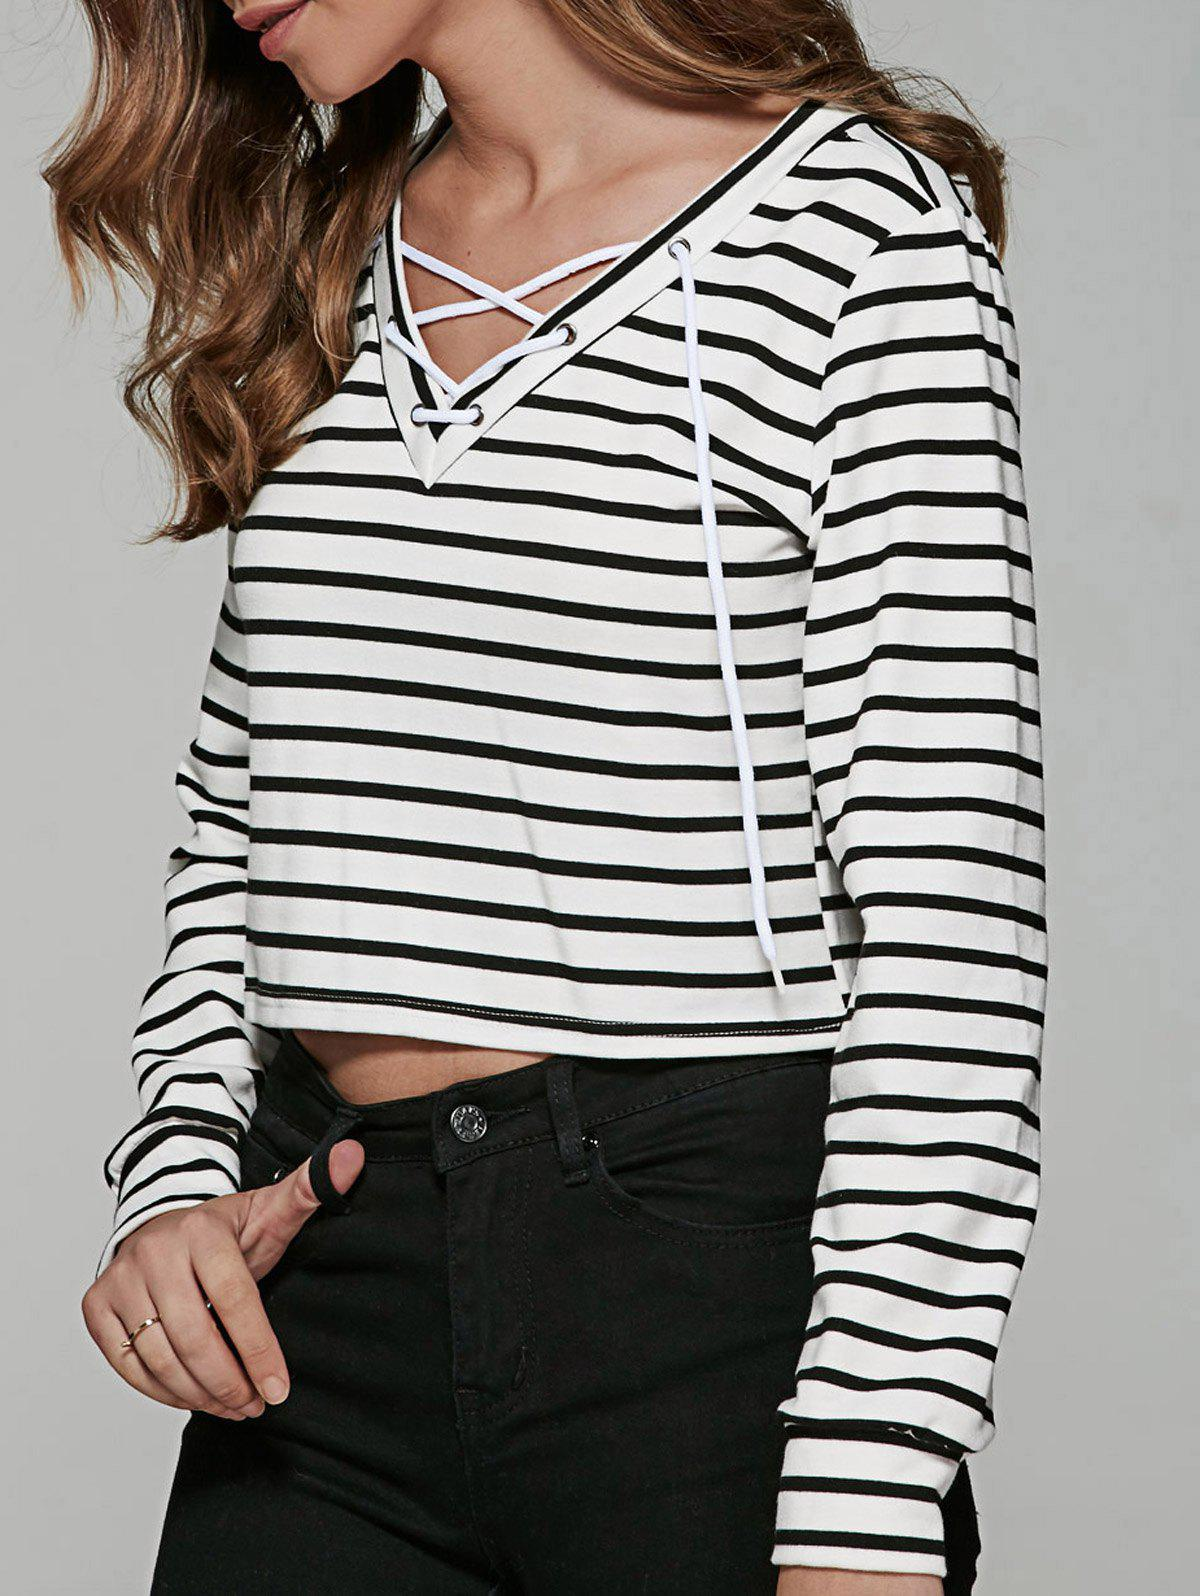 Lace Up Striped Print T-Shirt - WHITE/BLACK L